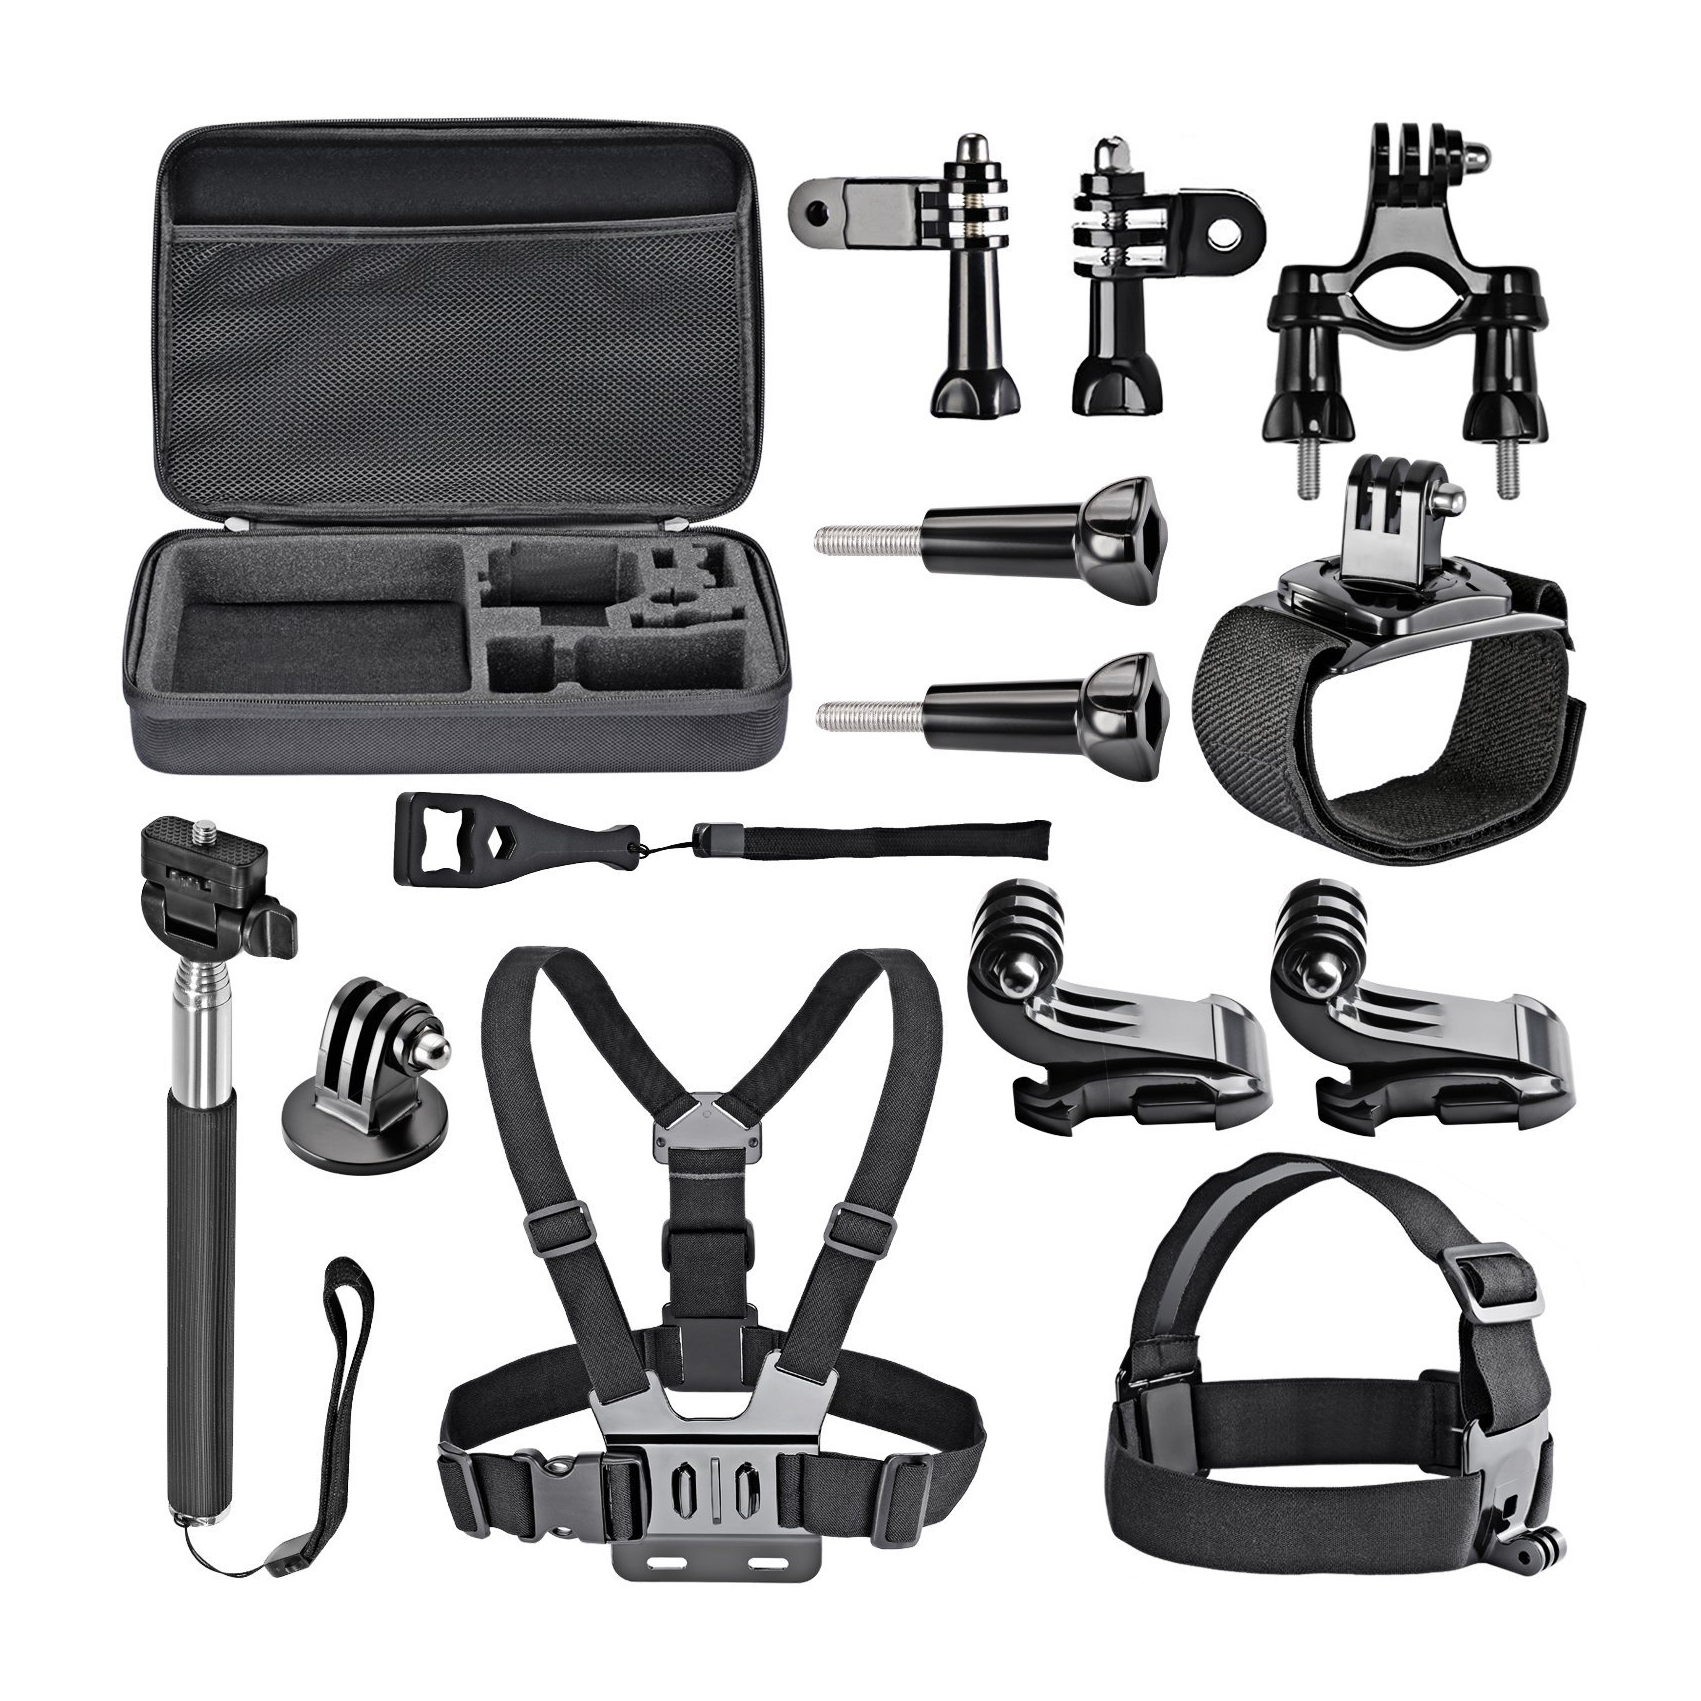 14-in-1 game External sports indispensable accessories for Gopro HD Hero4 Hero 1 2 3 3+ 4, SJ4000